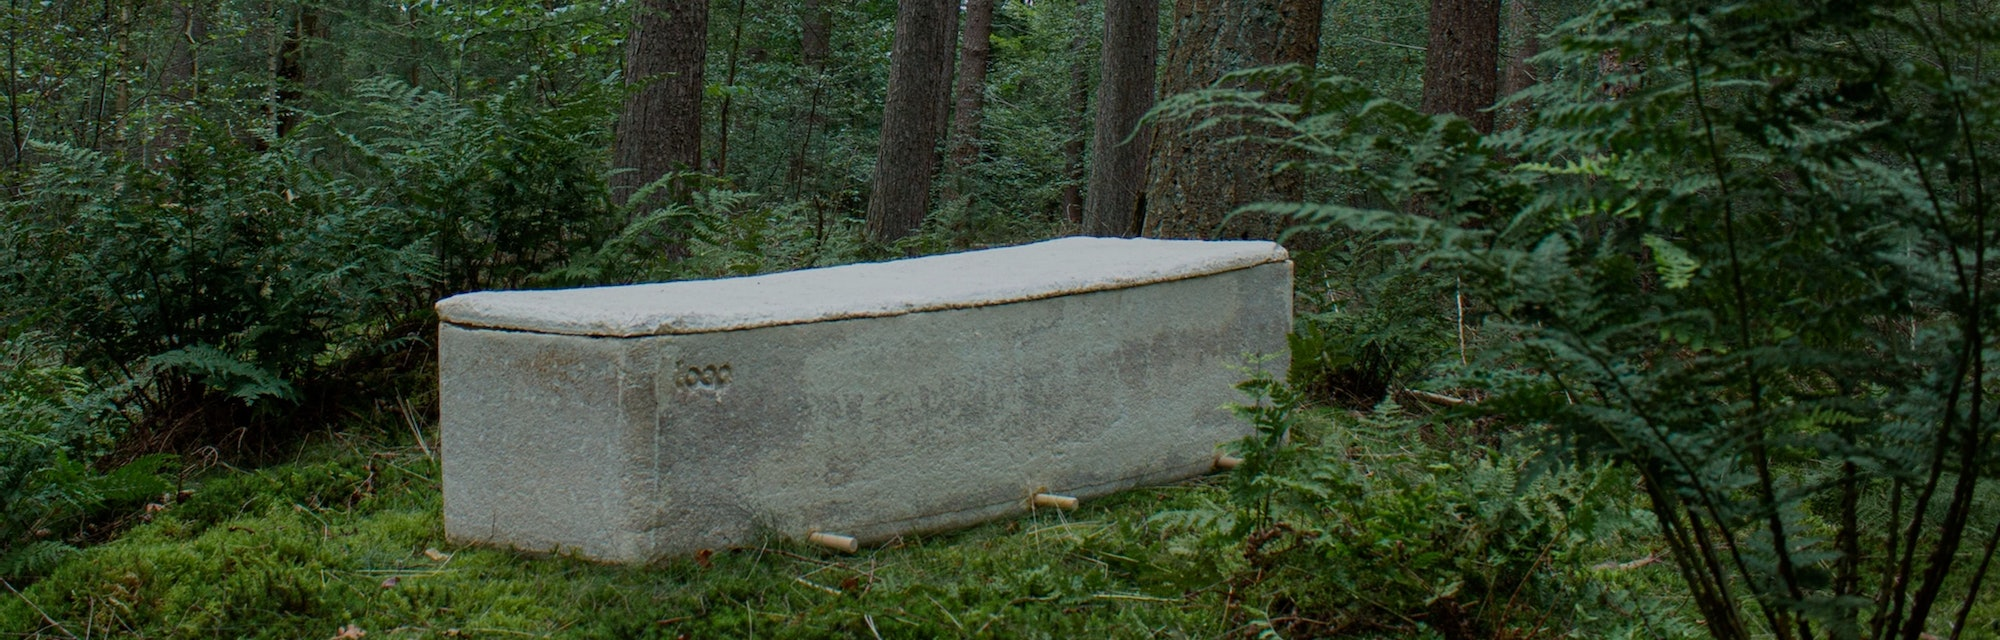 Loop coffin in woods